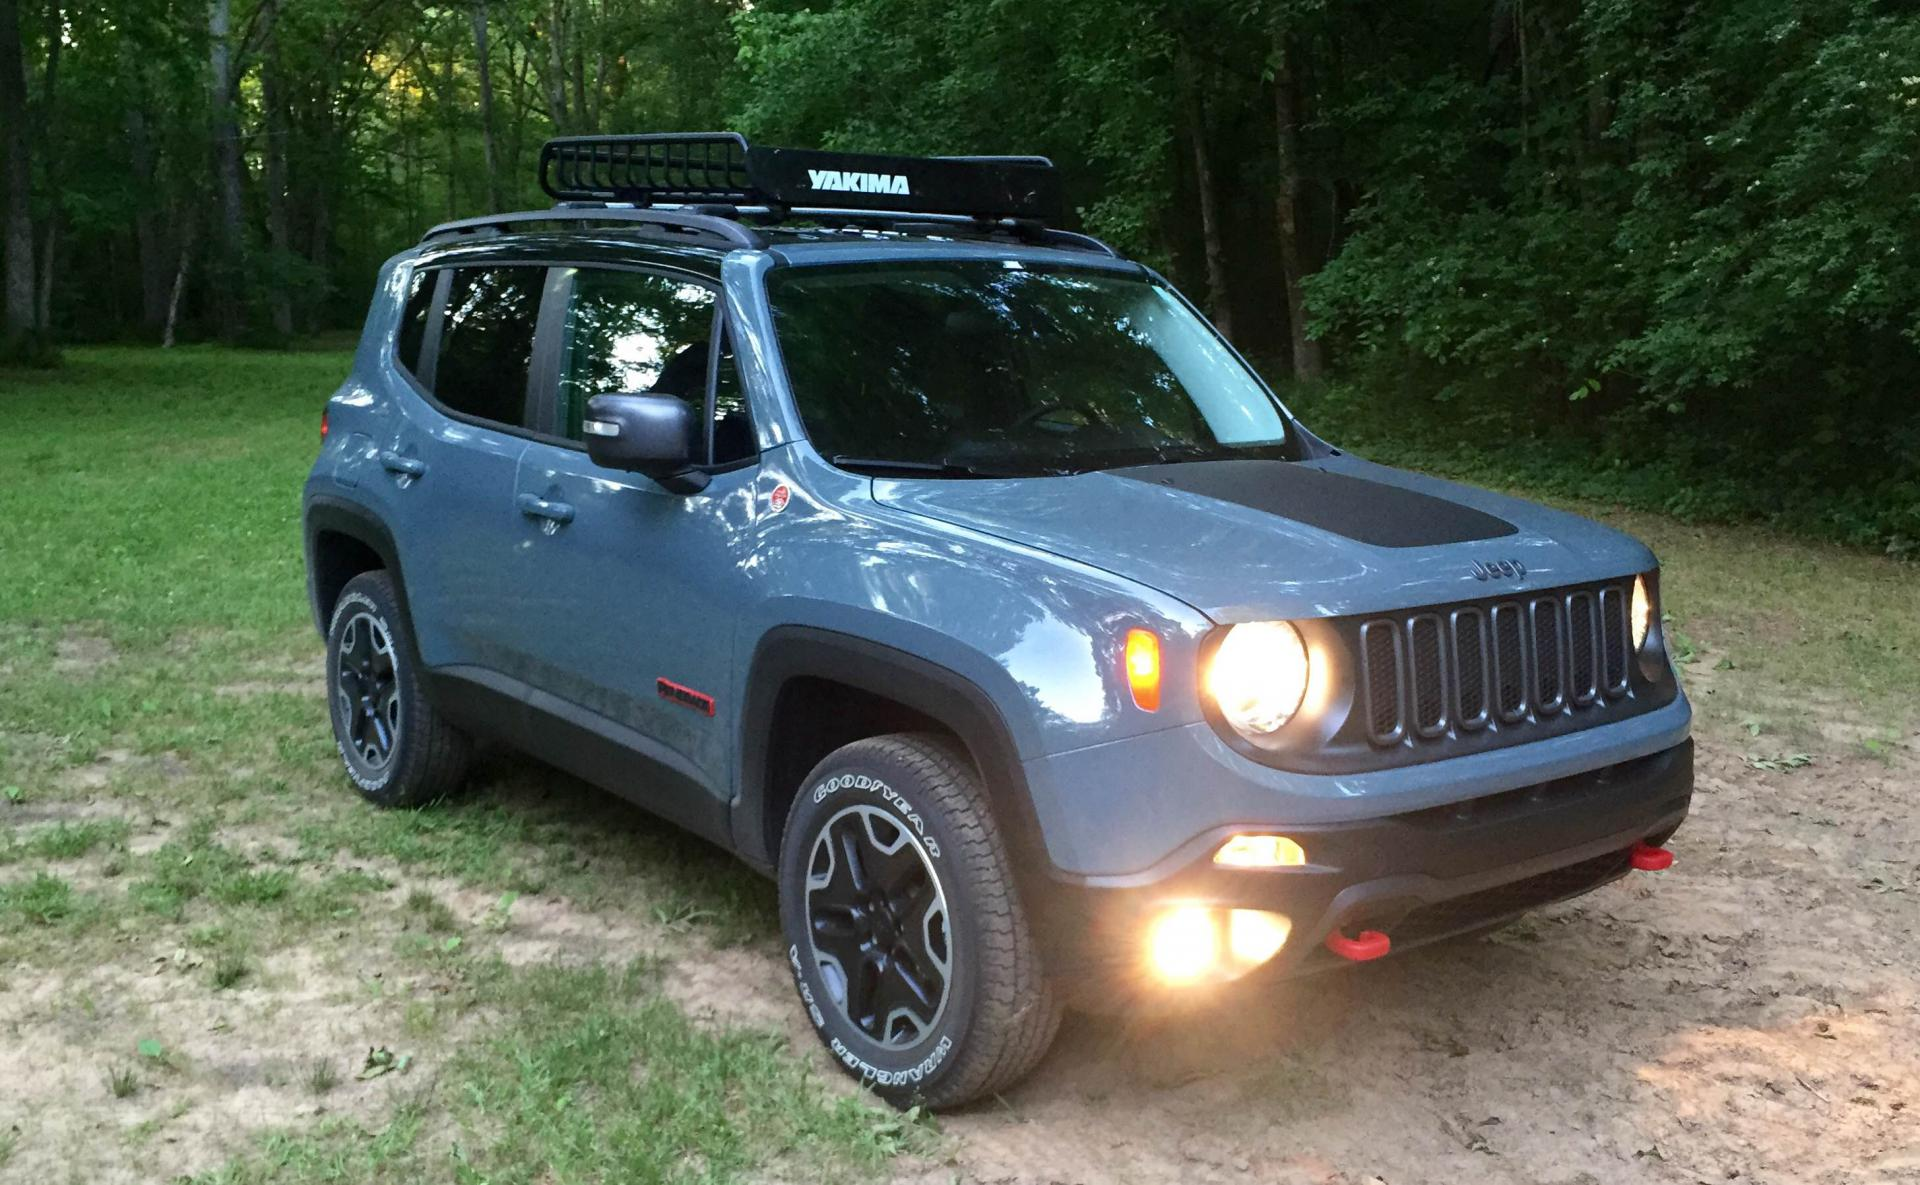 Bike Rack For Jeep Renegade >> Jeep Renegade Roof Rack Basket - Best Roof 2018